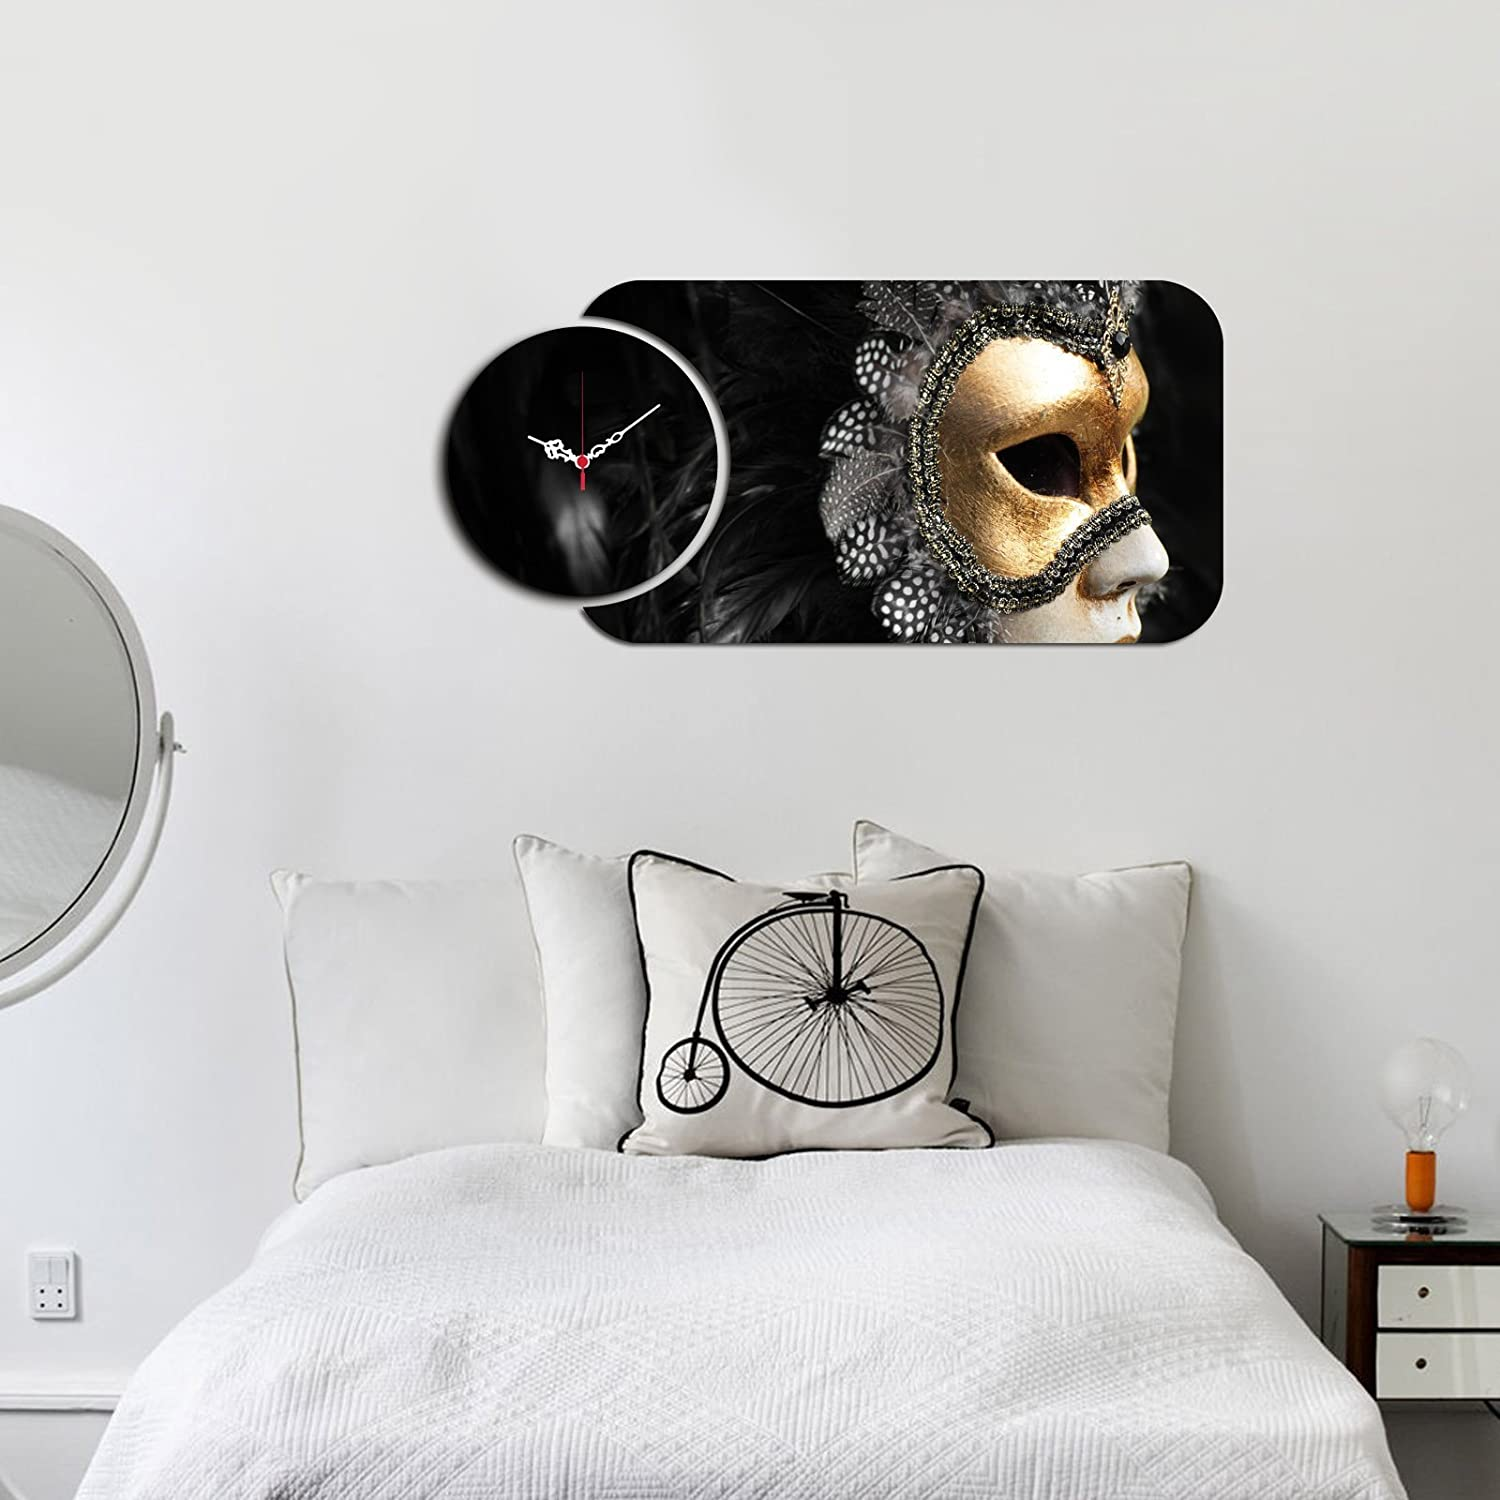 Dorm LaModaHome MDF Real Running Clock 27 x 13 Size Black Swan Mask with Feathers - Wall Art Hanging for Living Room Children/'s Room 238HMA5146 - Wall Art Hanging for Living Room Childrens Room Size Bedroom Ready to Hang 27 x 13